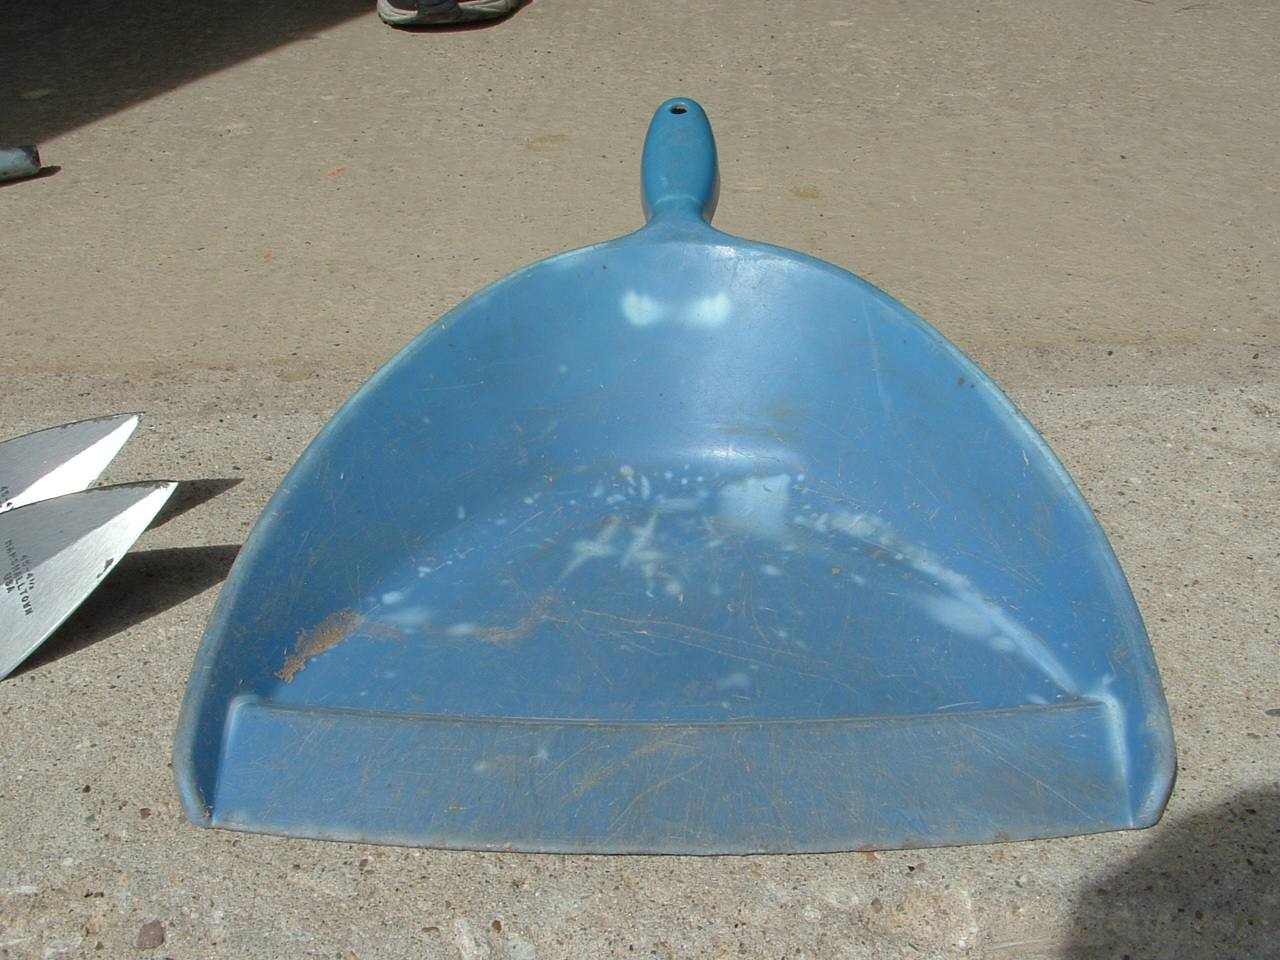 A dust pan, like the coal scoop, can come in very handy for removing excavated soil.